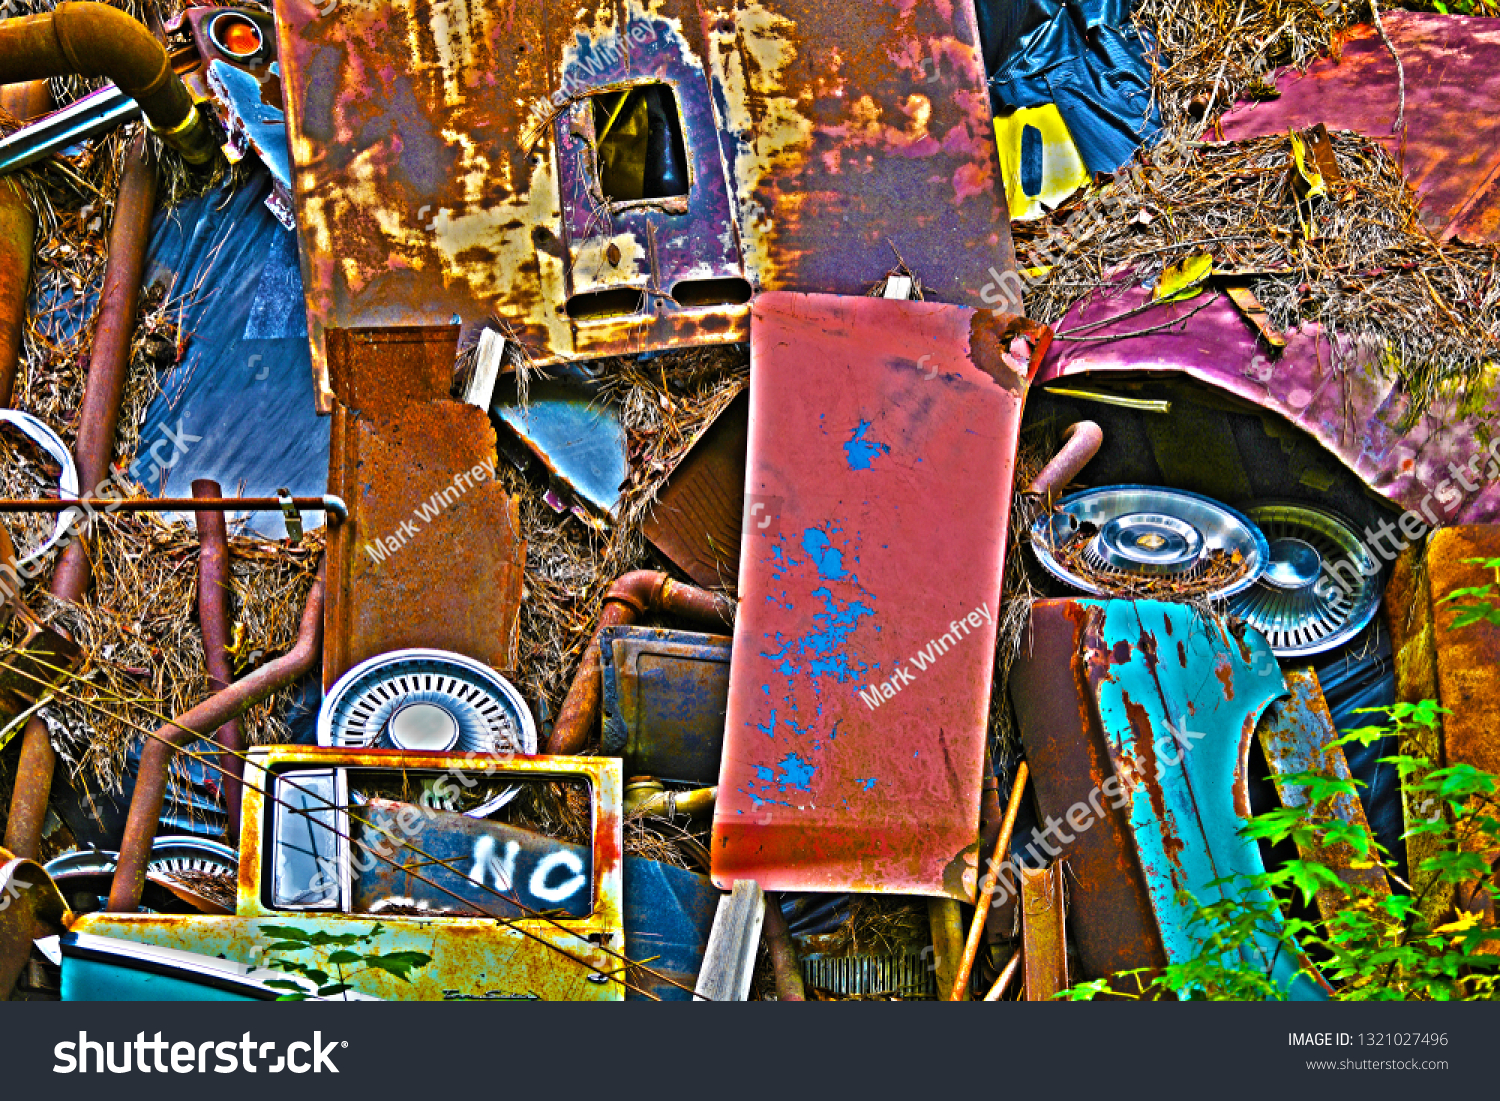 stock-photo-a-pile-of-scrap-metal-with-v